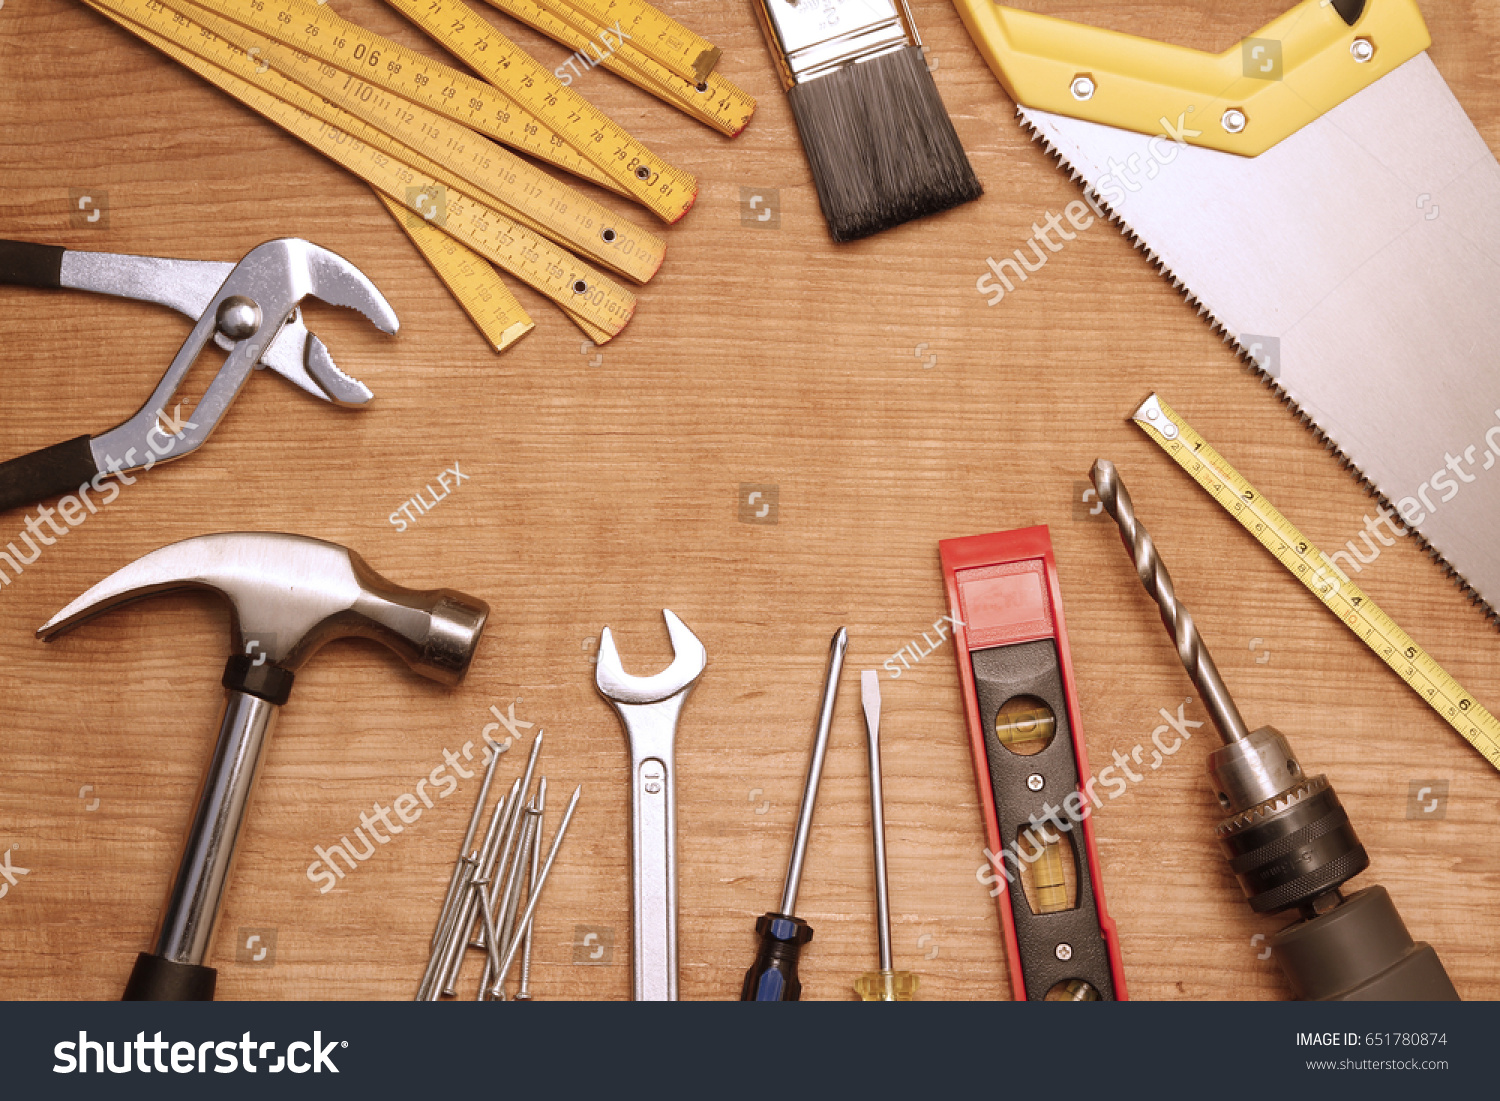 Assorted work tools on wood #651780874